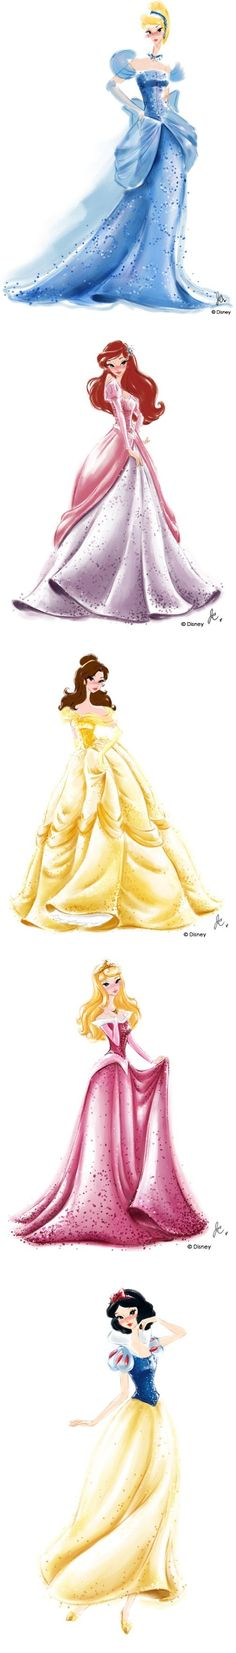 Disney Princess Watercolors by selena